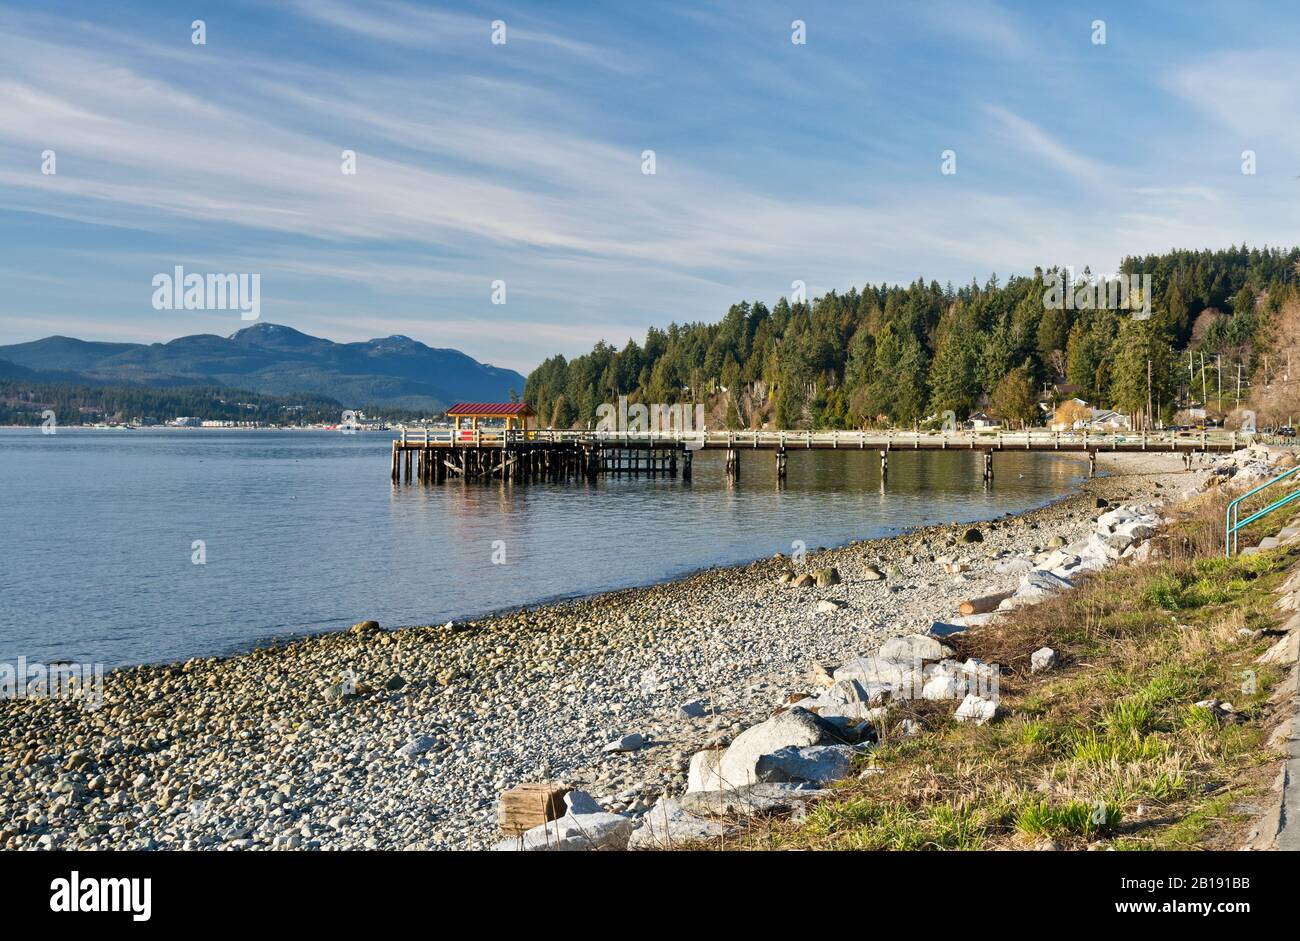 Beach and pier at Davis Bay, British Columbia, near Sechelt, on the Sunshine Coast. Stock Photo